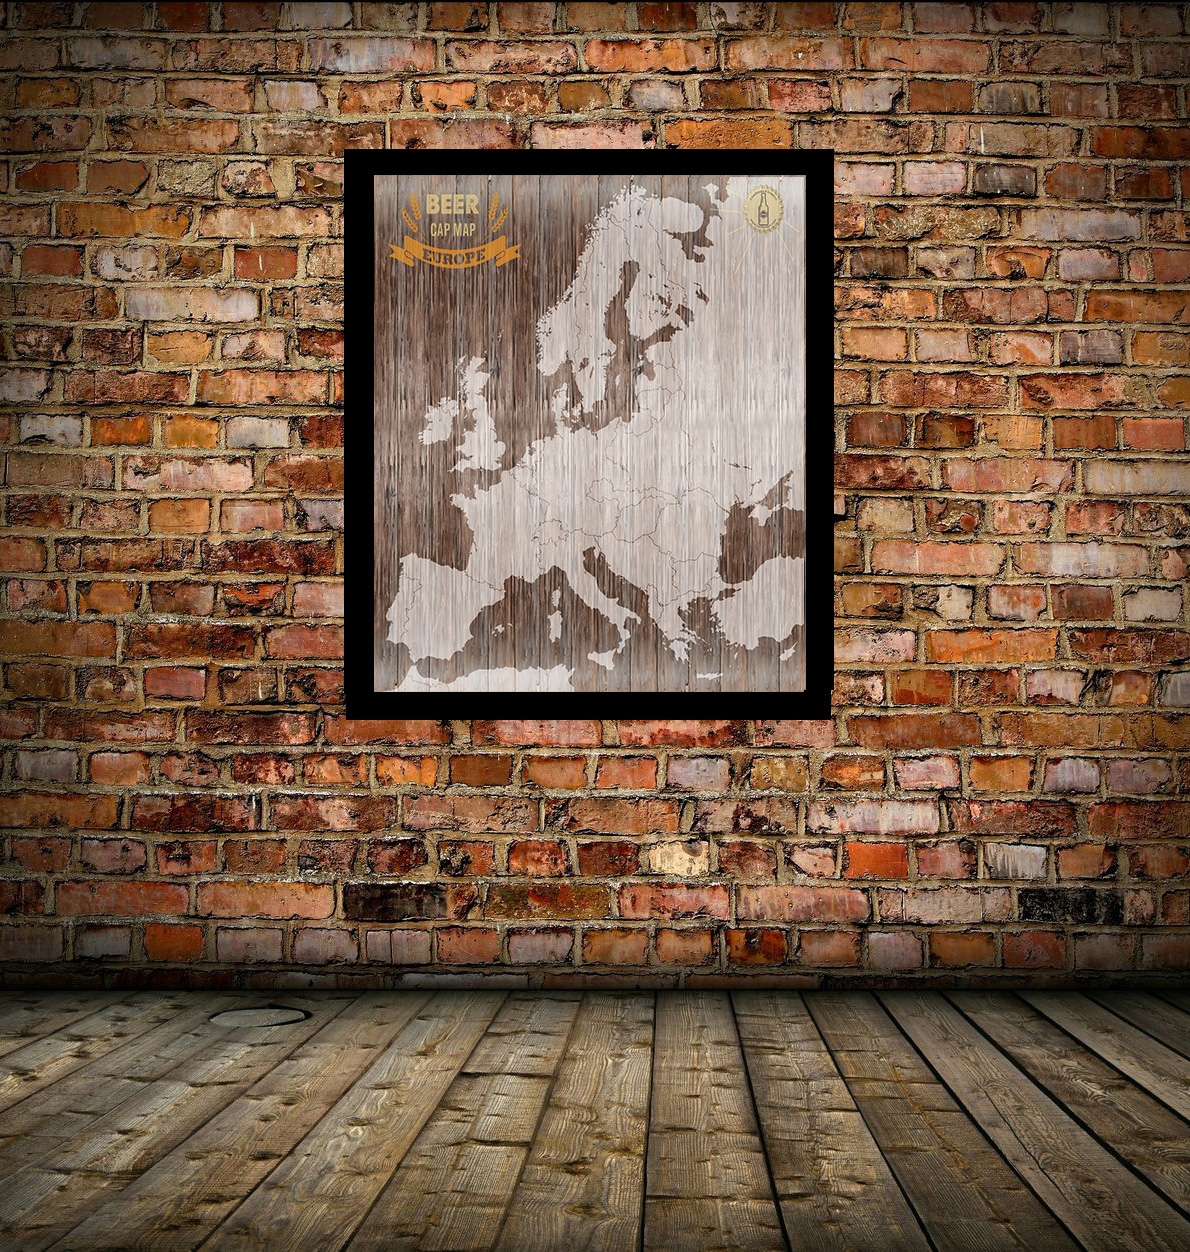 Europe-Beer-Cap-on-Brick-Wall-Background Magnetic World Map For Wall on magnetic travel map with pins, magnetic pins for maps, magnetic puzzle map of usa, world maps for your wall, magnetic wall board, framed world wall, magnetic travel map state, magnetic map of the world, magnetic and the world,